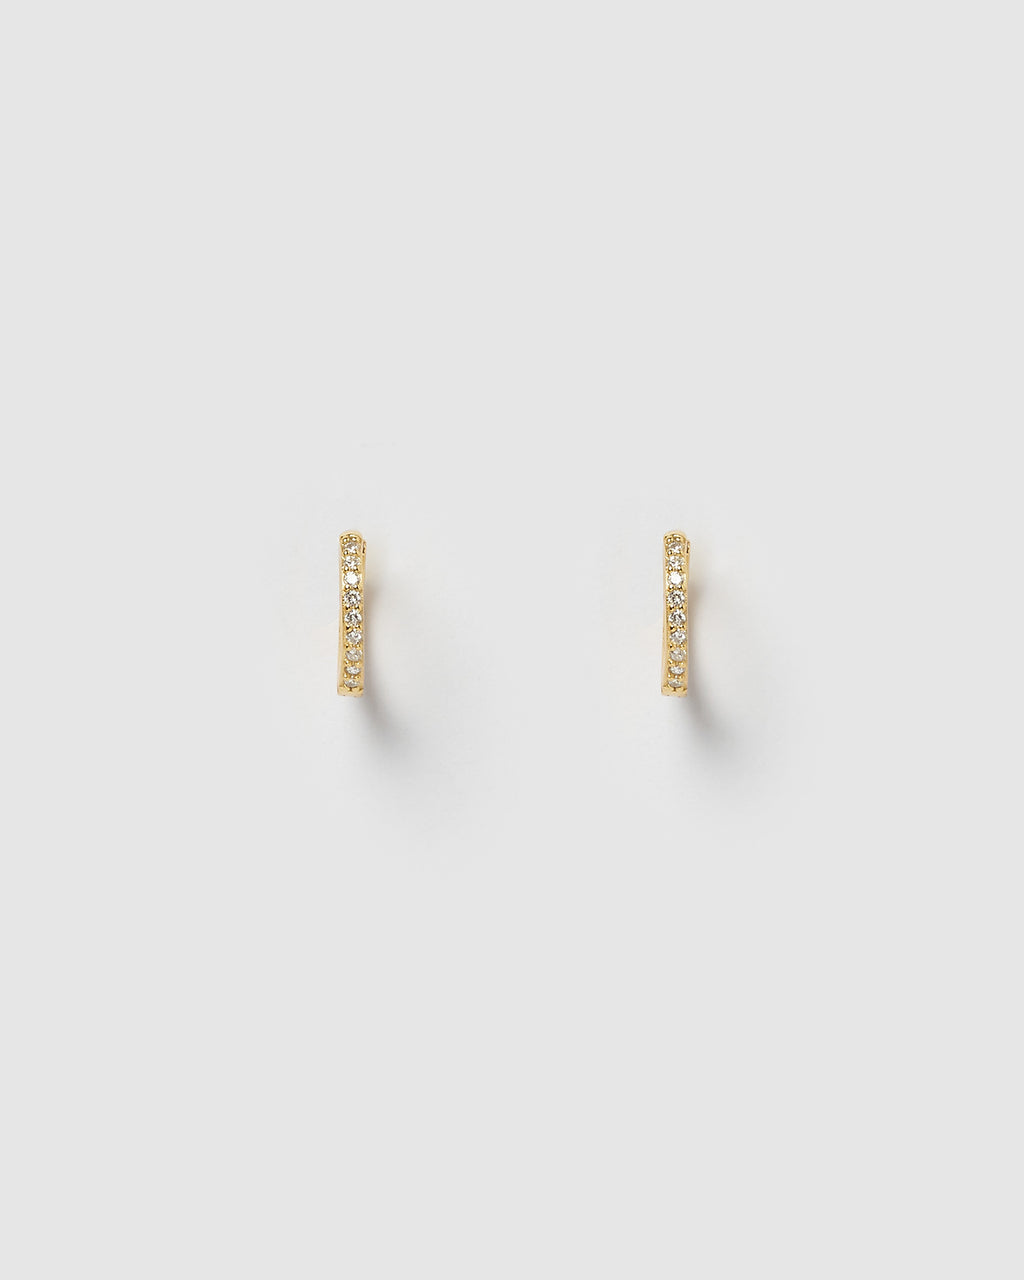 ** PRE ORDER** Izoa Remi Huggie Earrings Gold